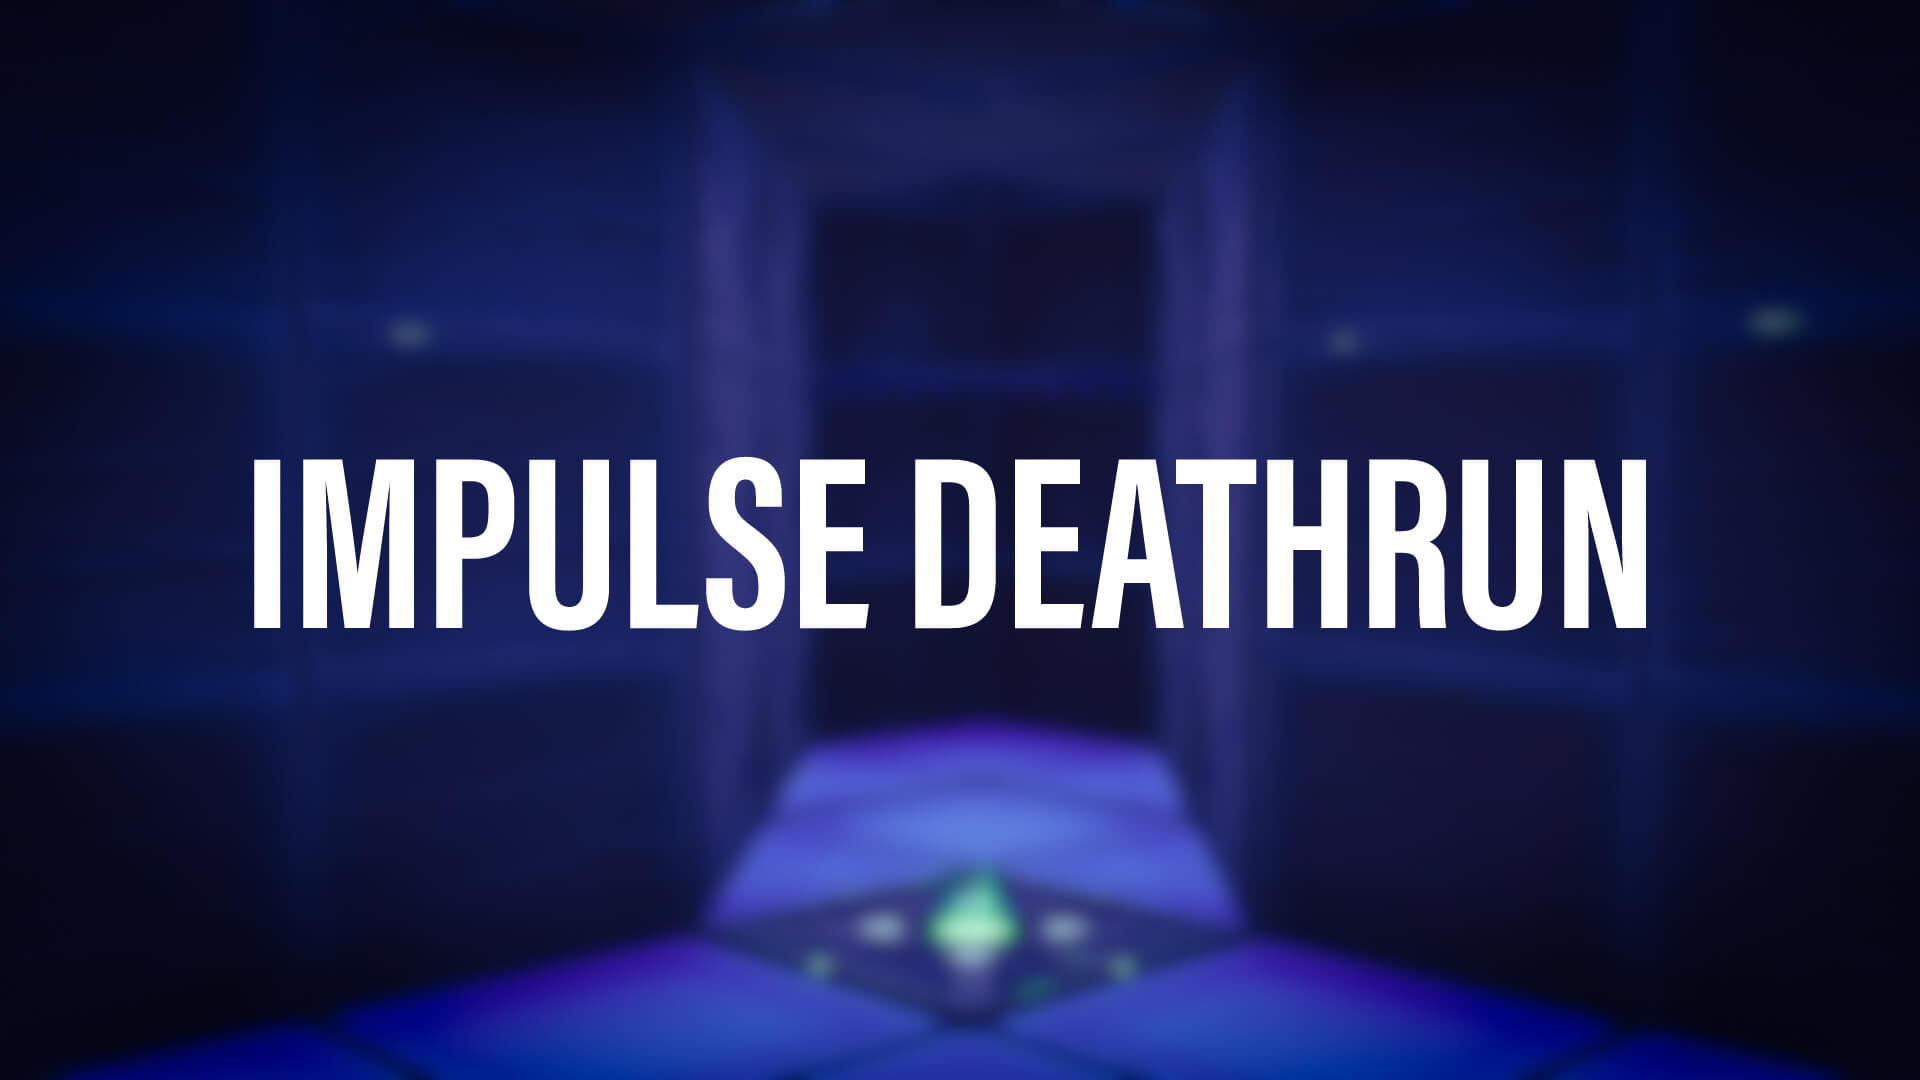 IMPULSE DEATHRUN | 5 HARD LEVELS